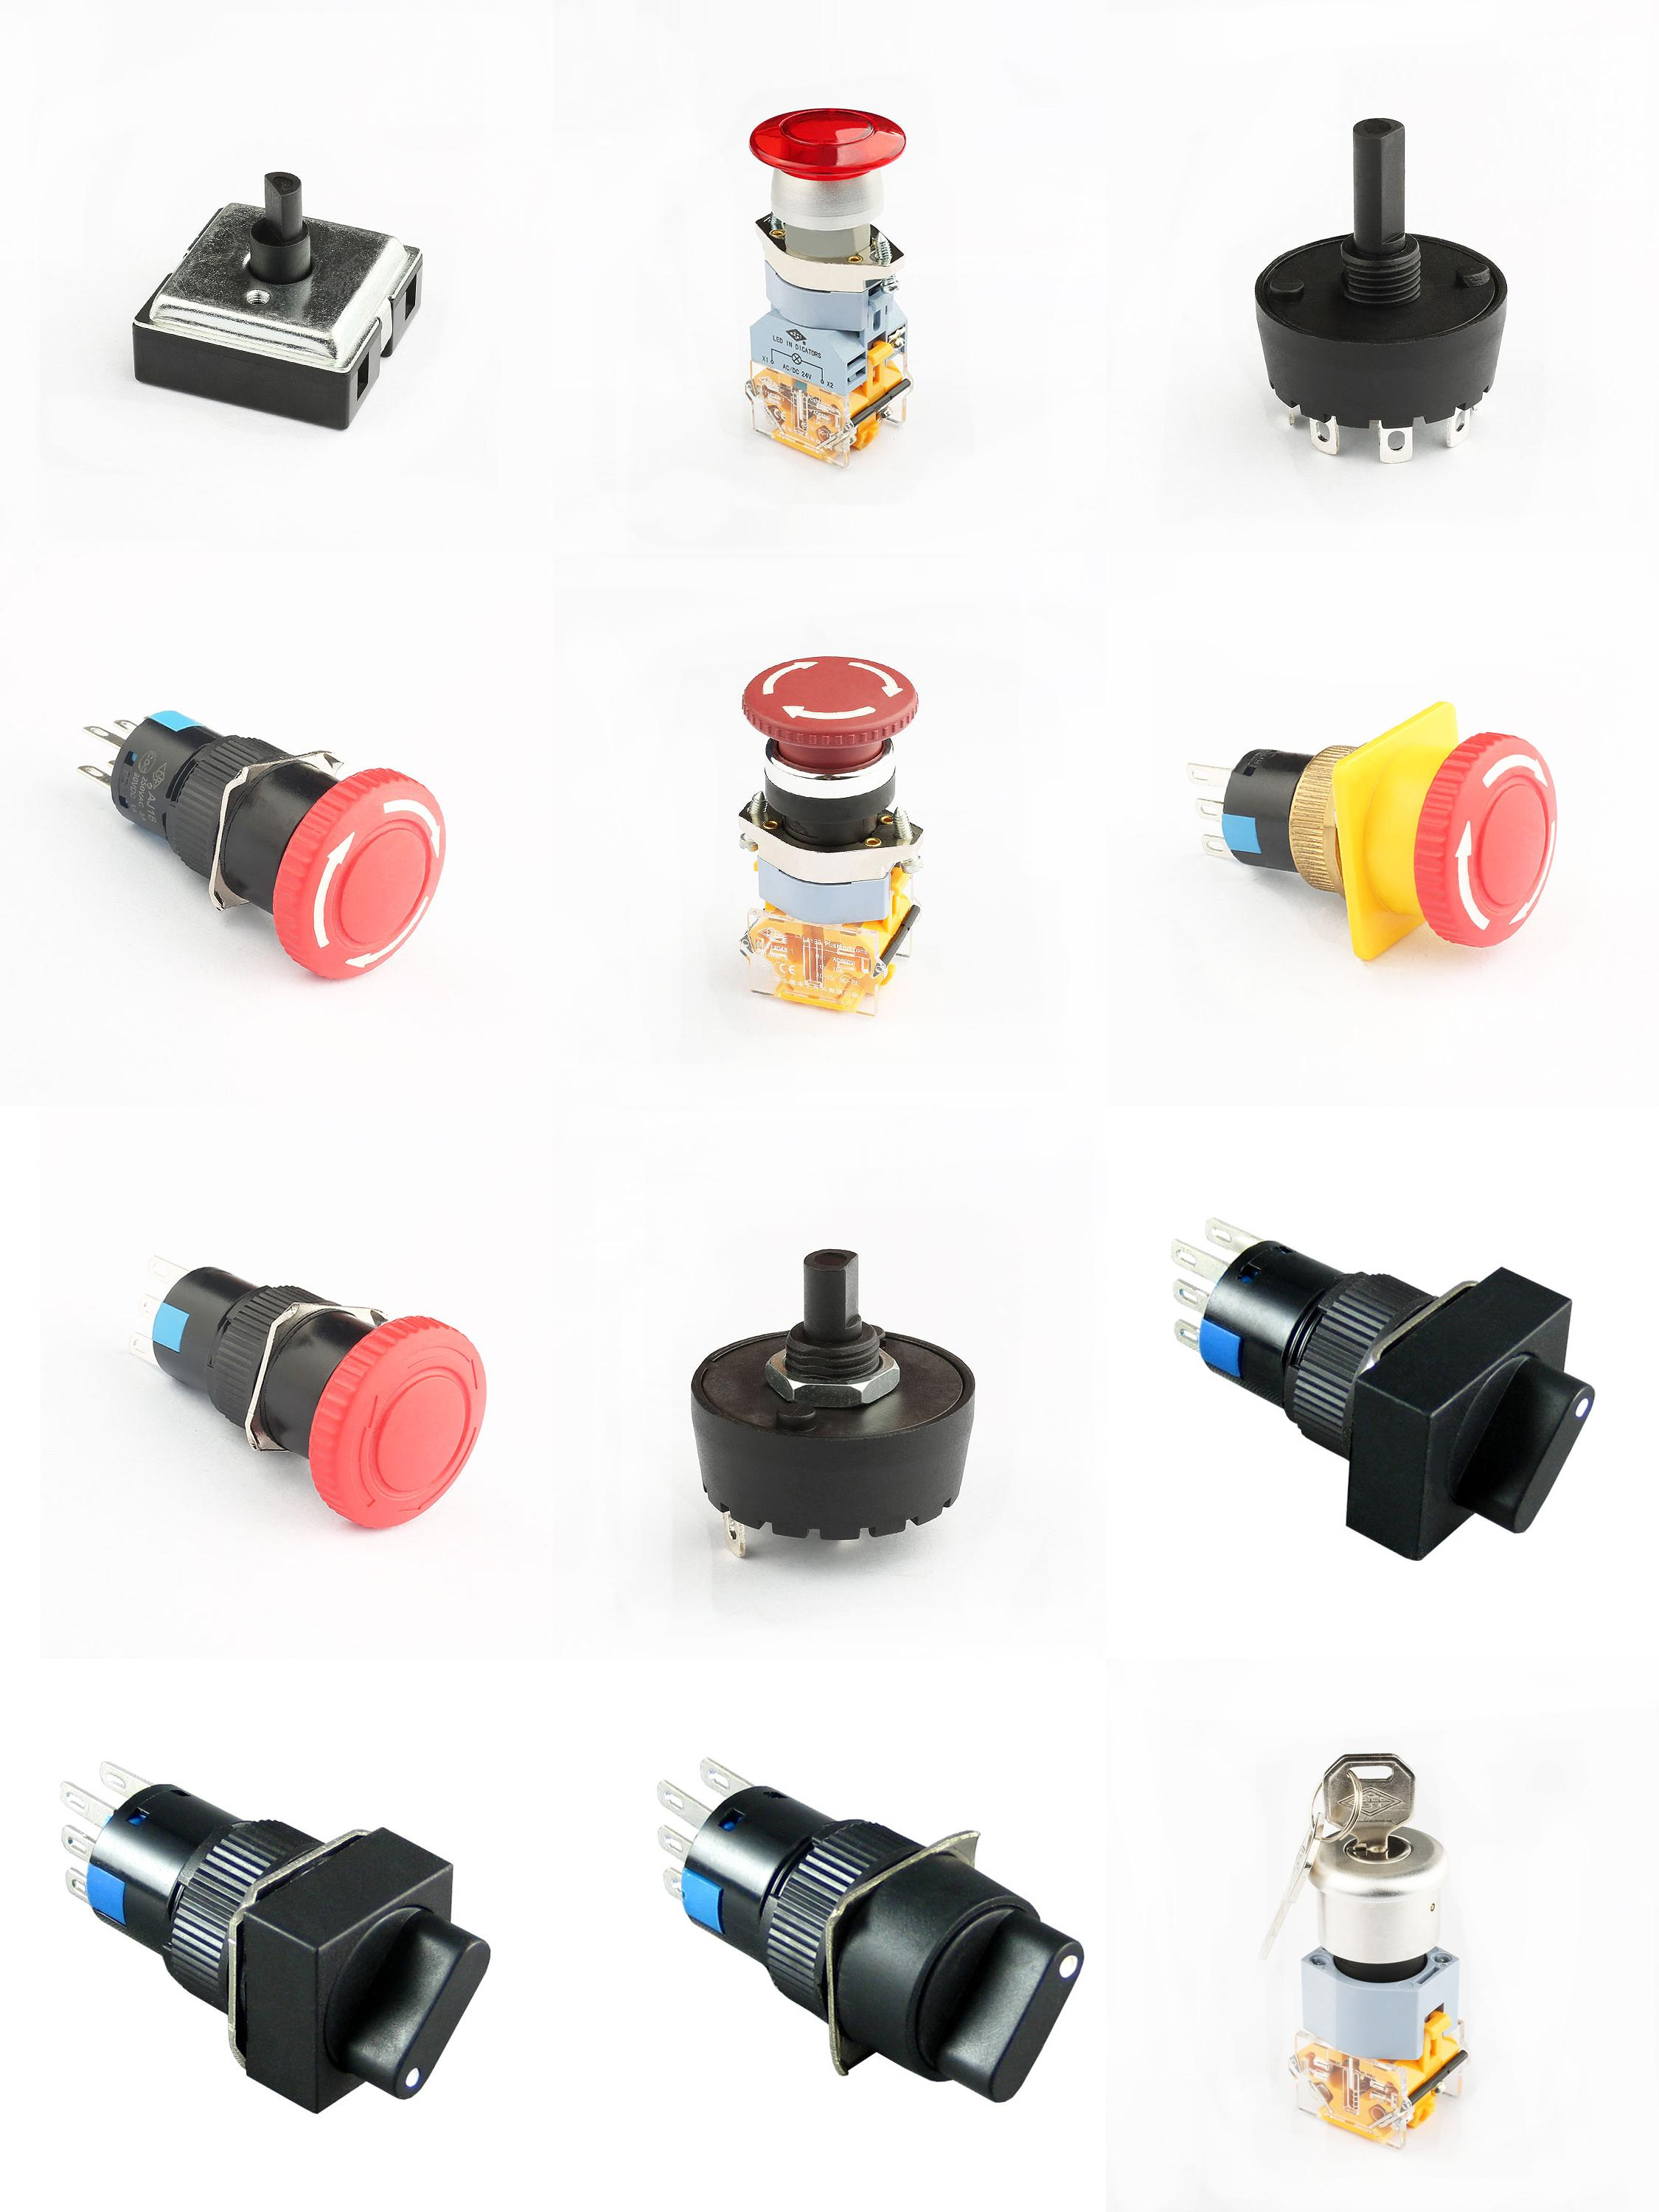 Hot selling good quality 3a 250v 3 phase rotary switch